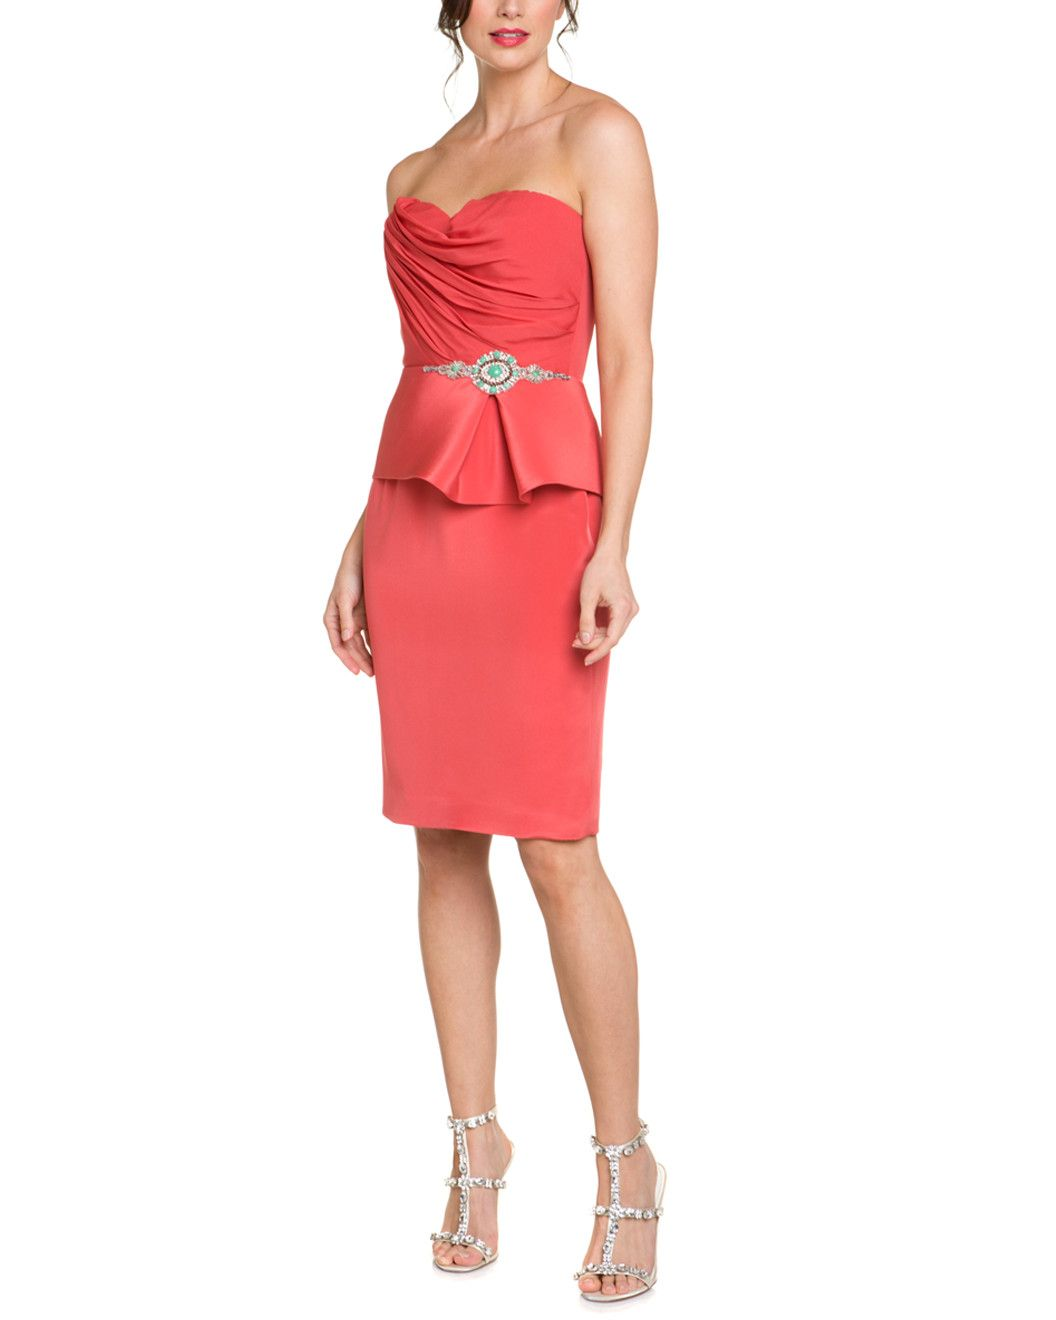 Buy Coral strapless peplum dress picture trends